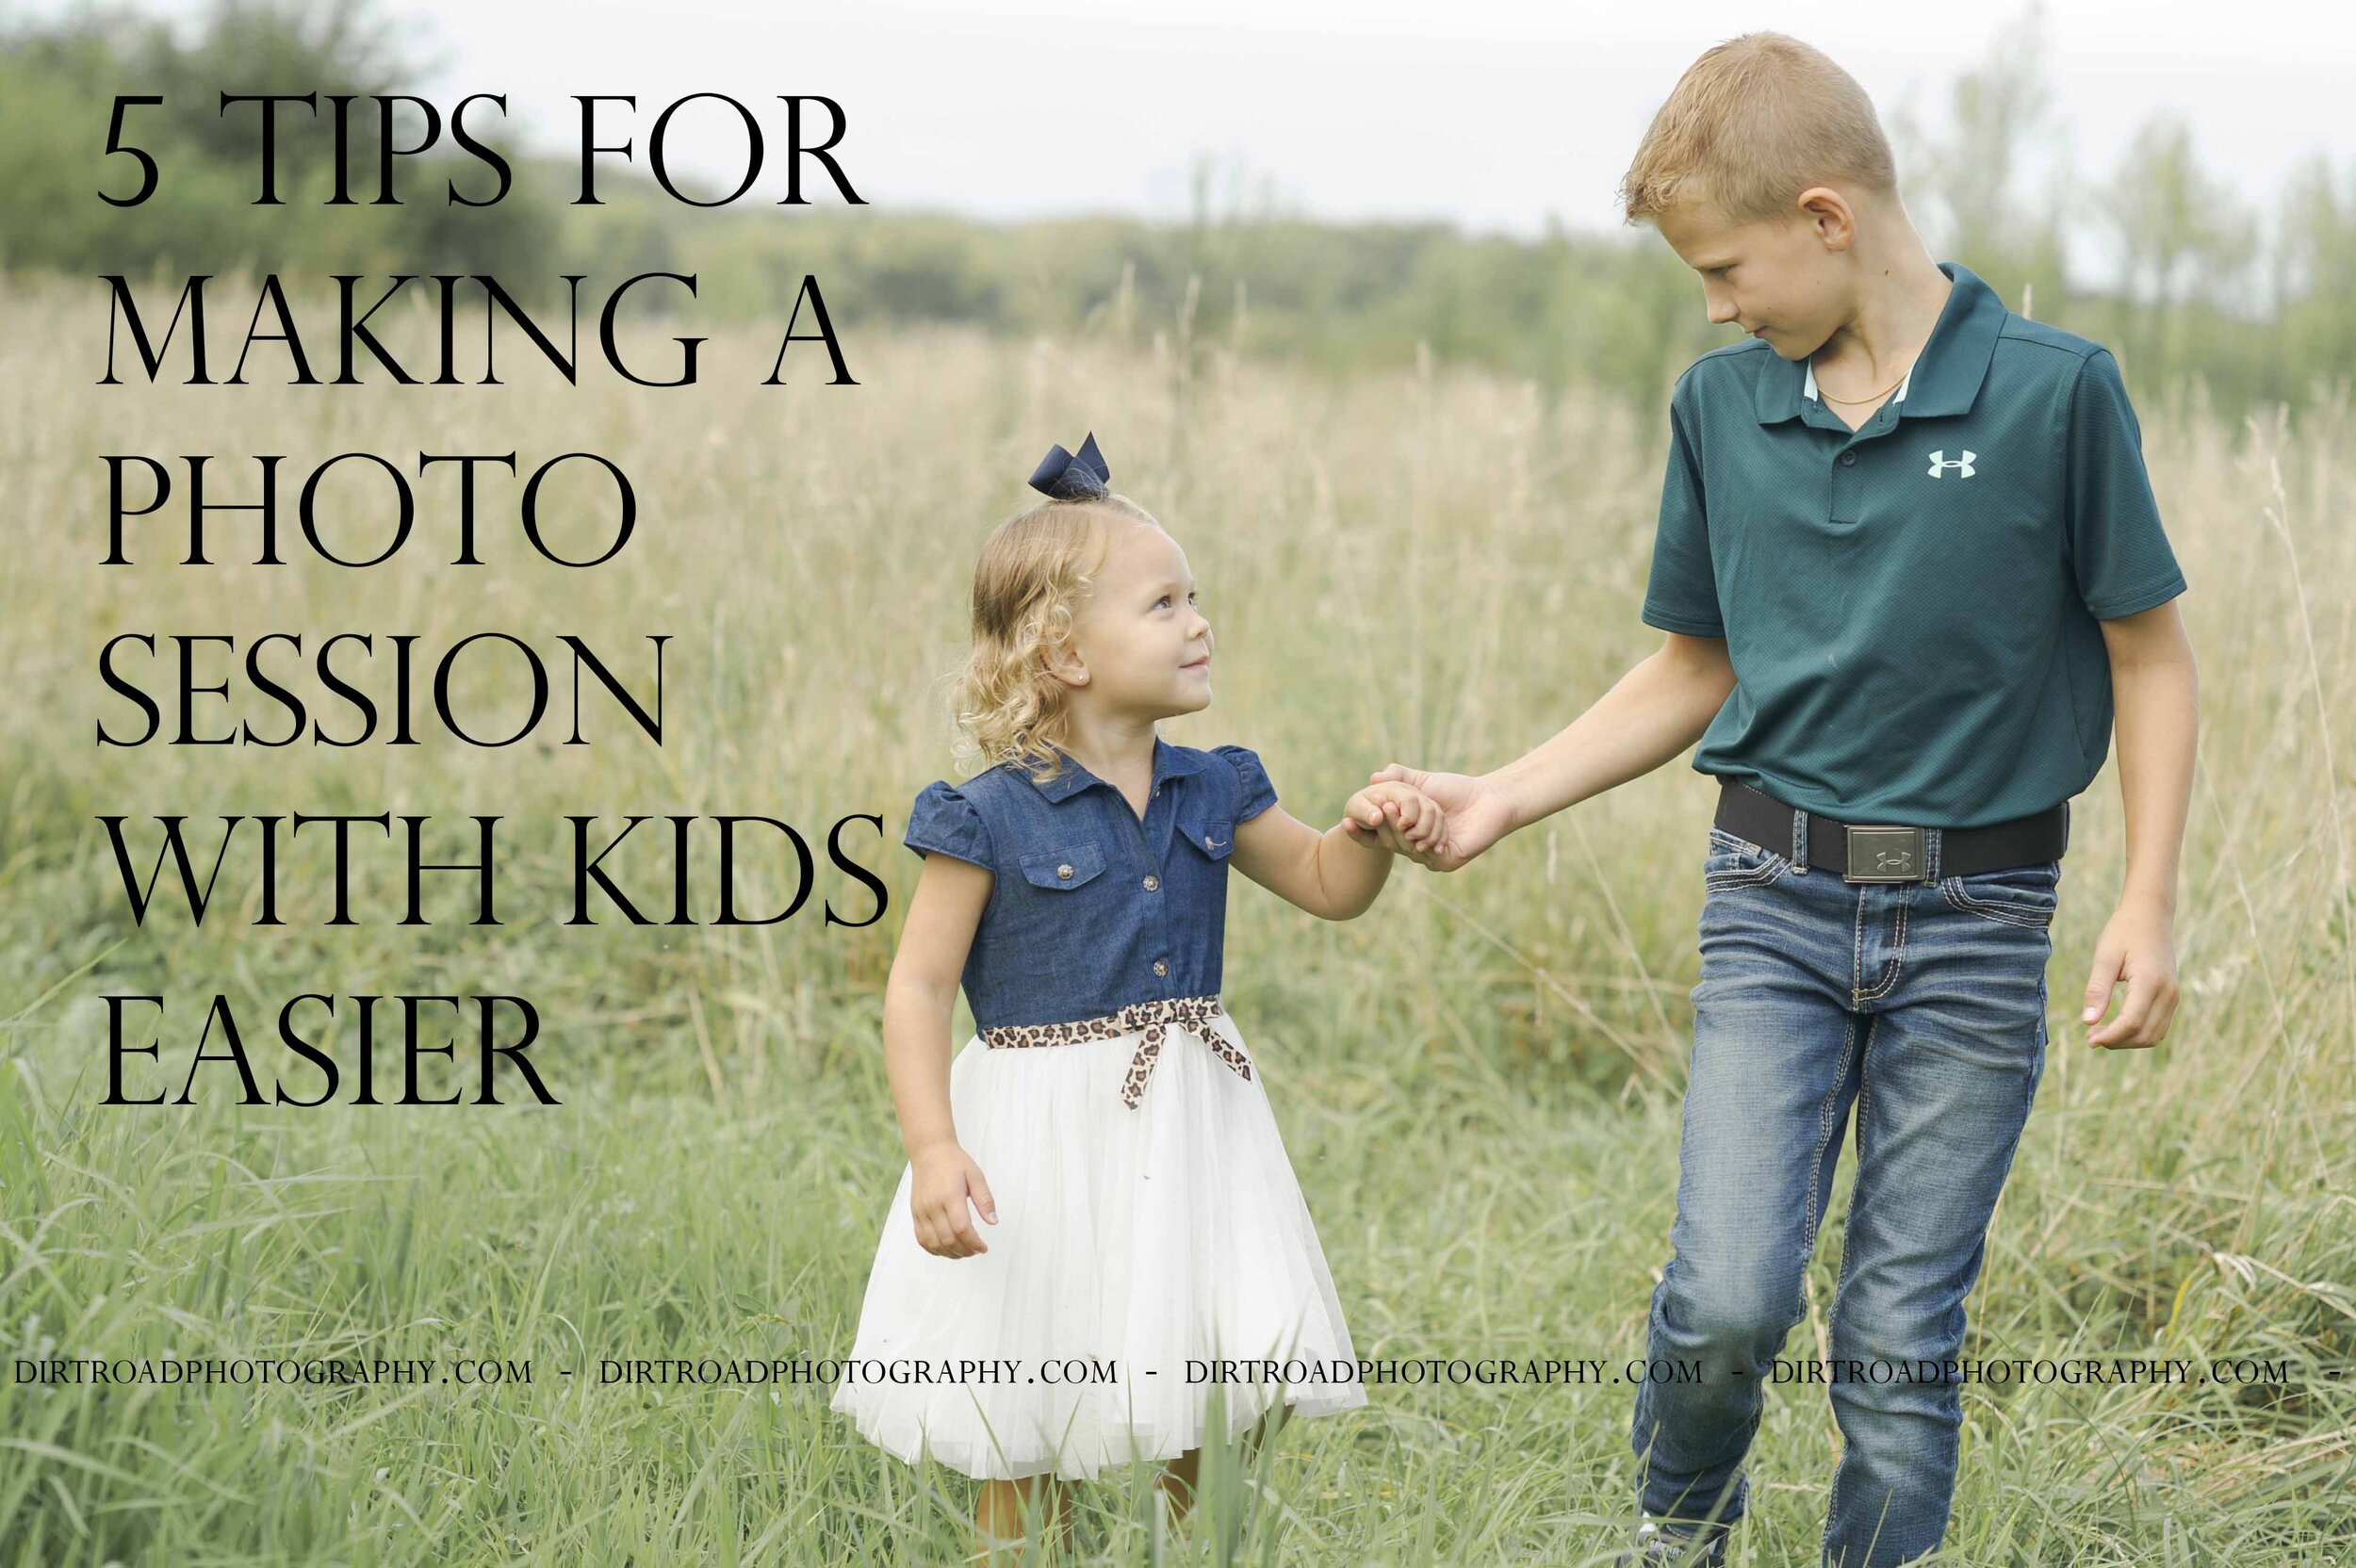 5 tips for making a photo session with kids easier. nebraska photographer images of little boy and girl holding hands walking in grass field at sunset in southeast nebraska near lincoln. photo taken by dirt road photography and photographer is kelsey (homolka) nerud.